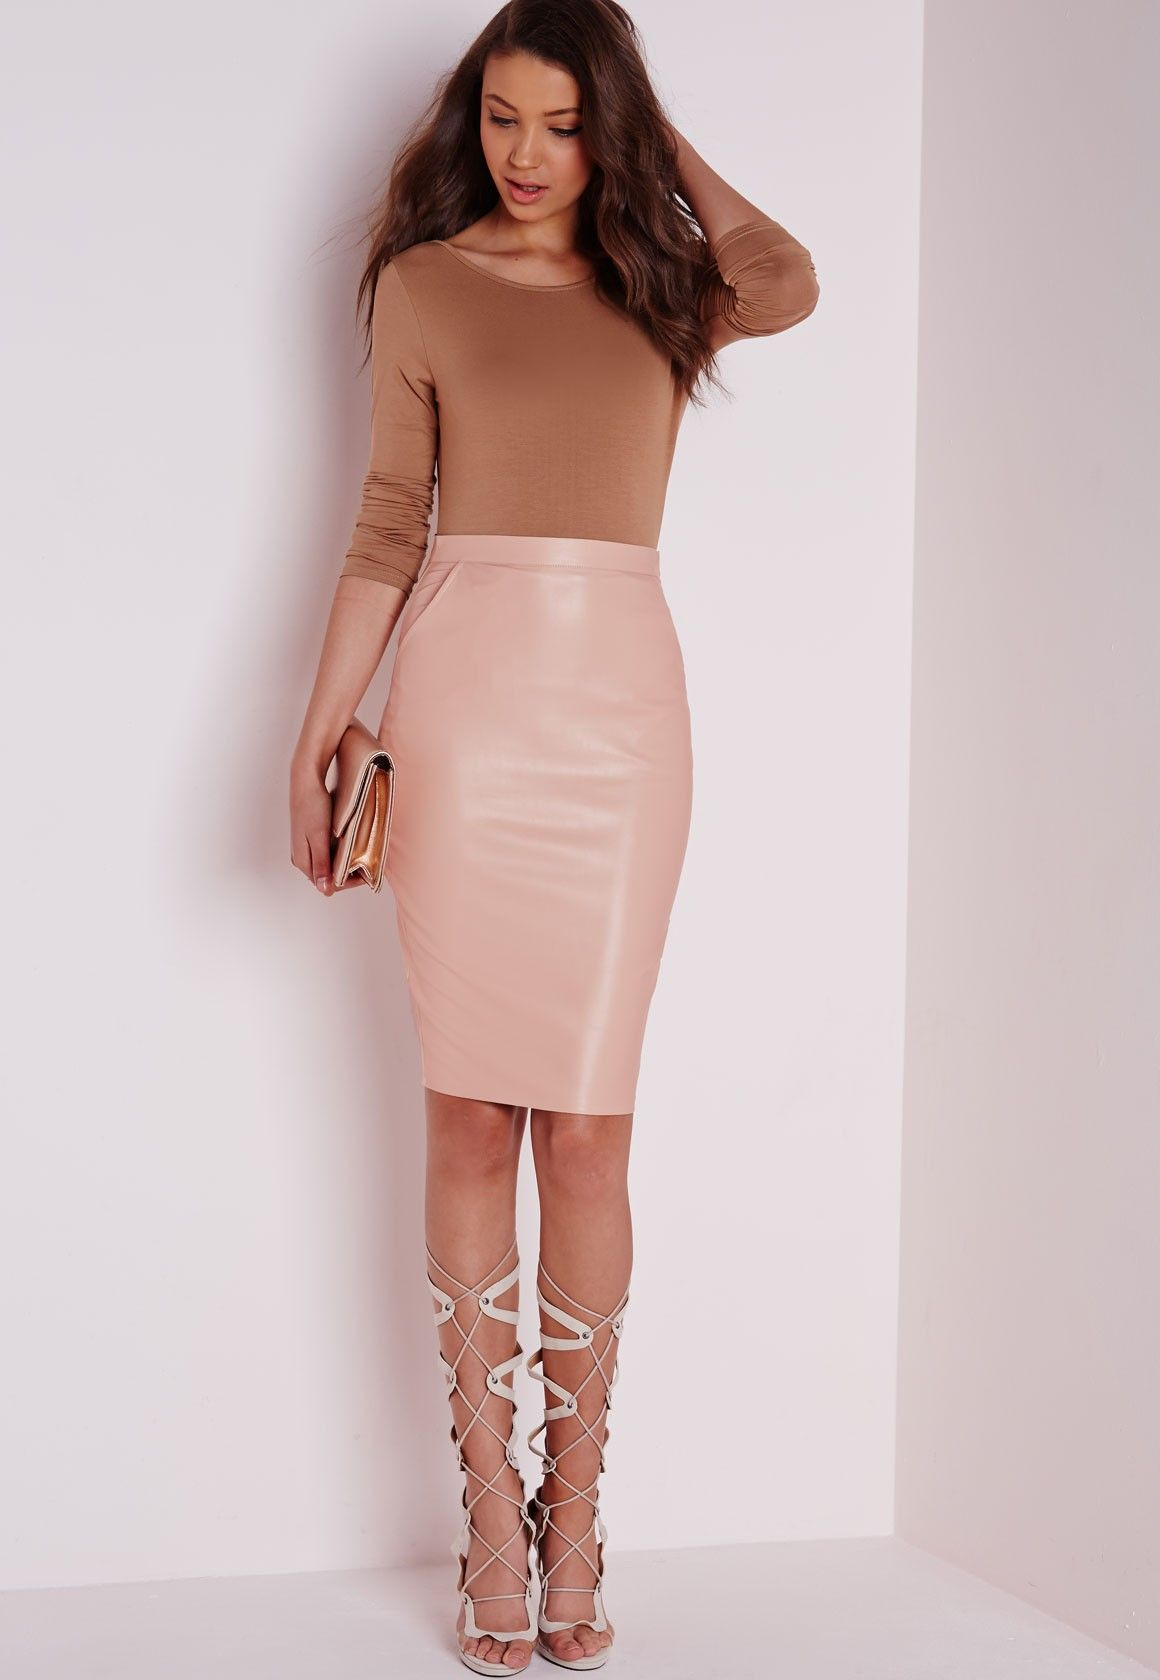 Chic 2 Piece Outfit w/ Nude Leather High Waist Pencil Skirt | Nova ...